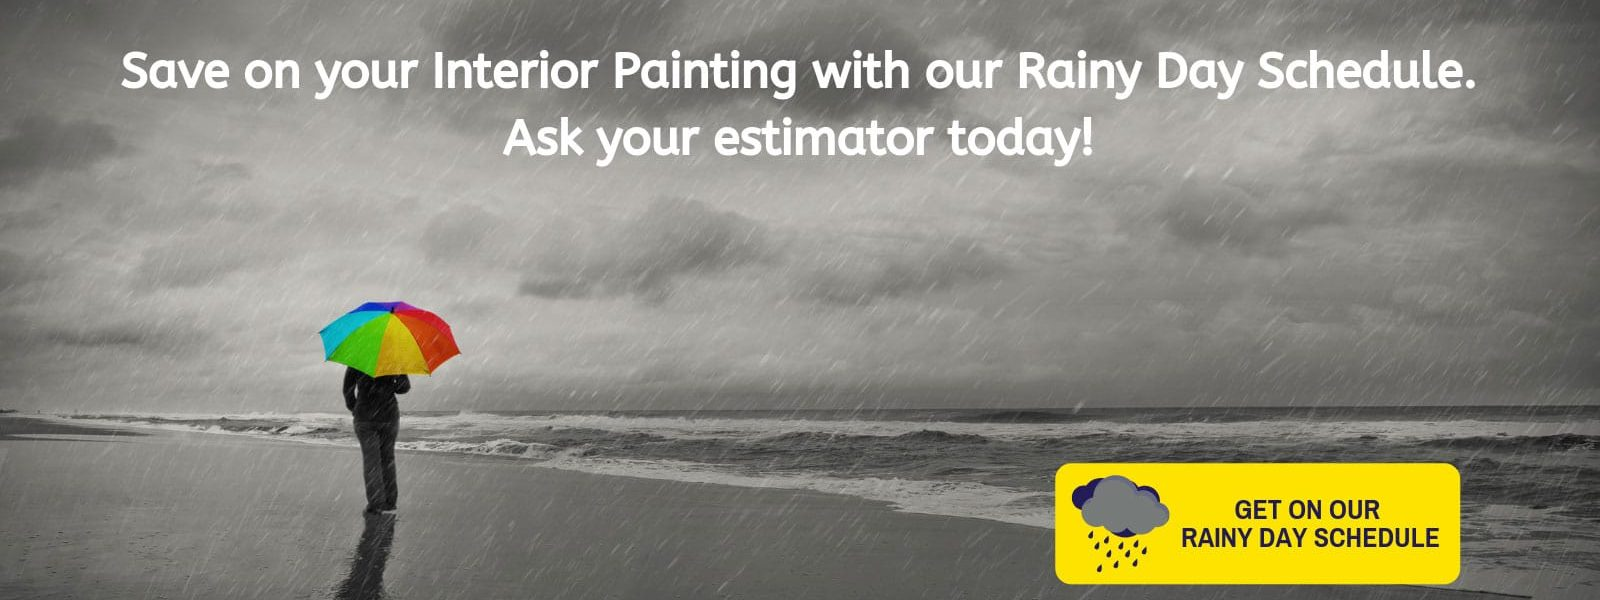 Rainy Day Schedule Can Save You Money